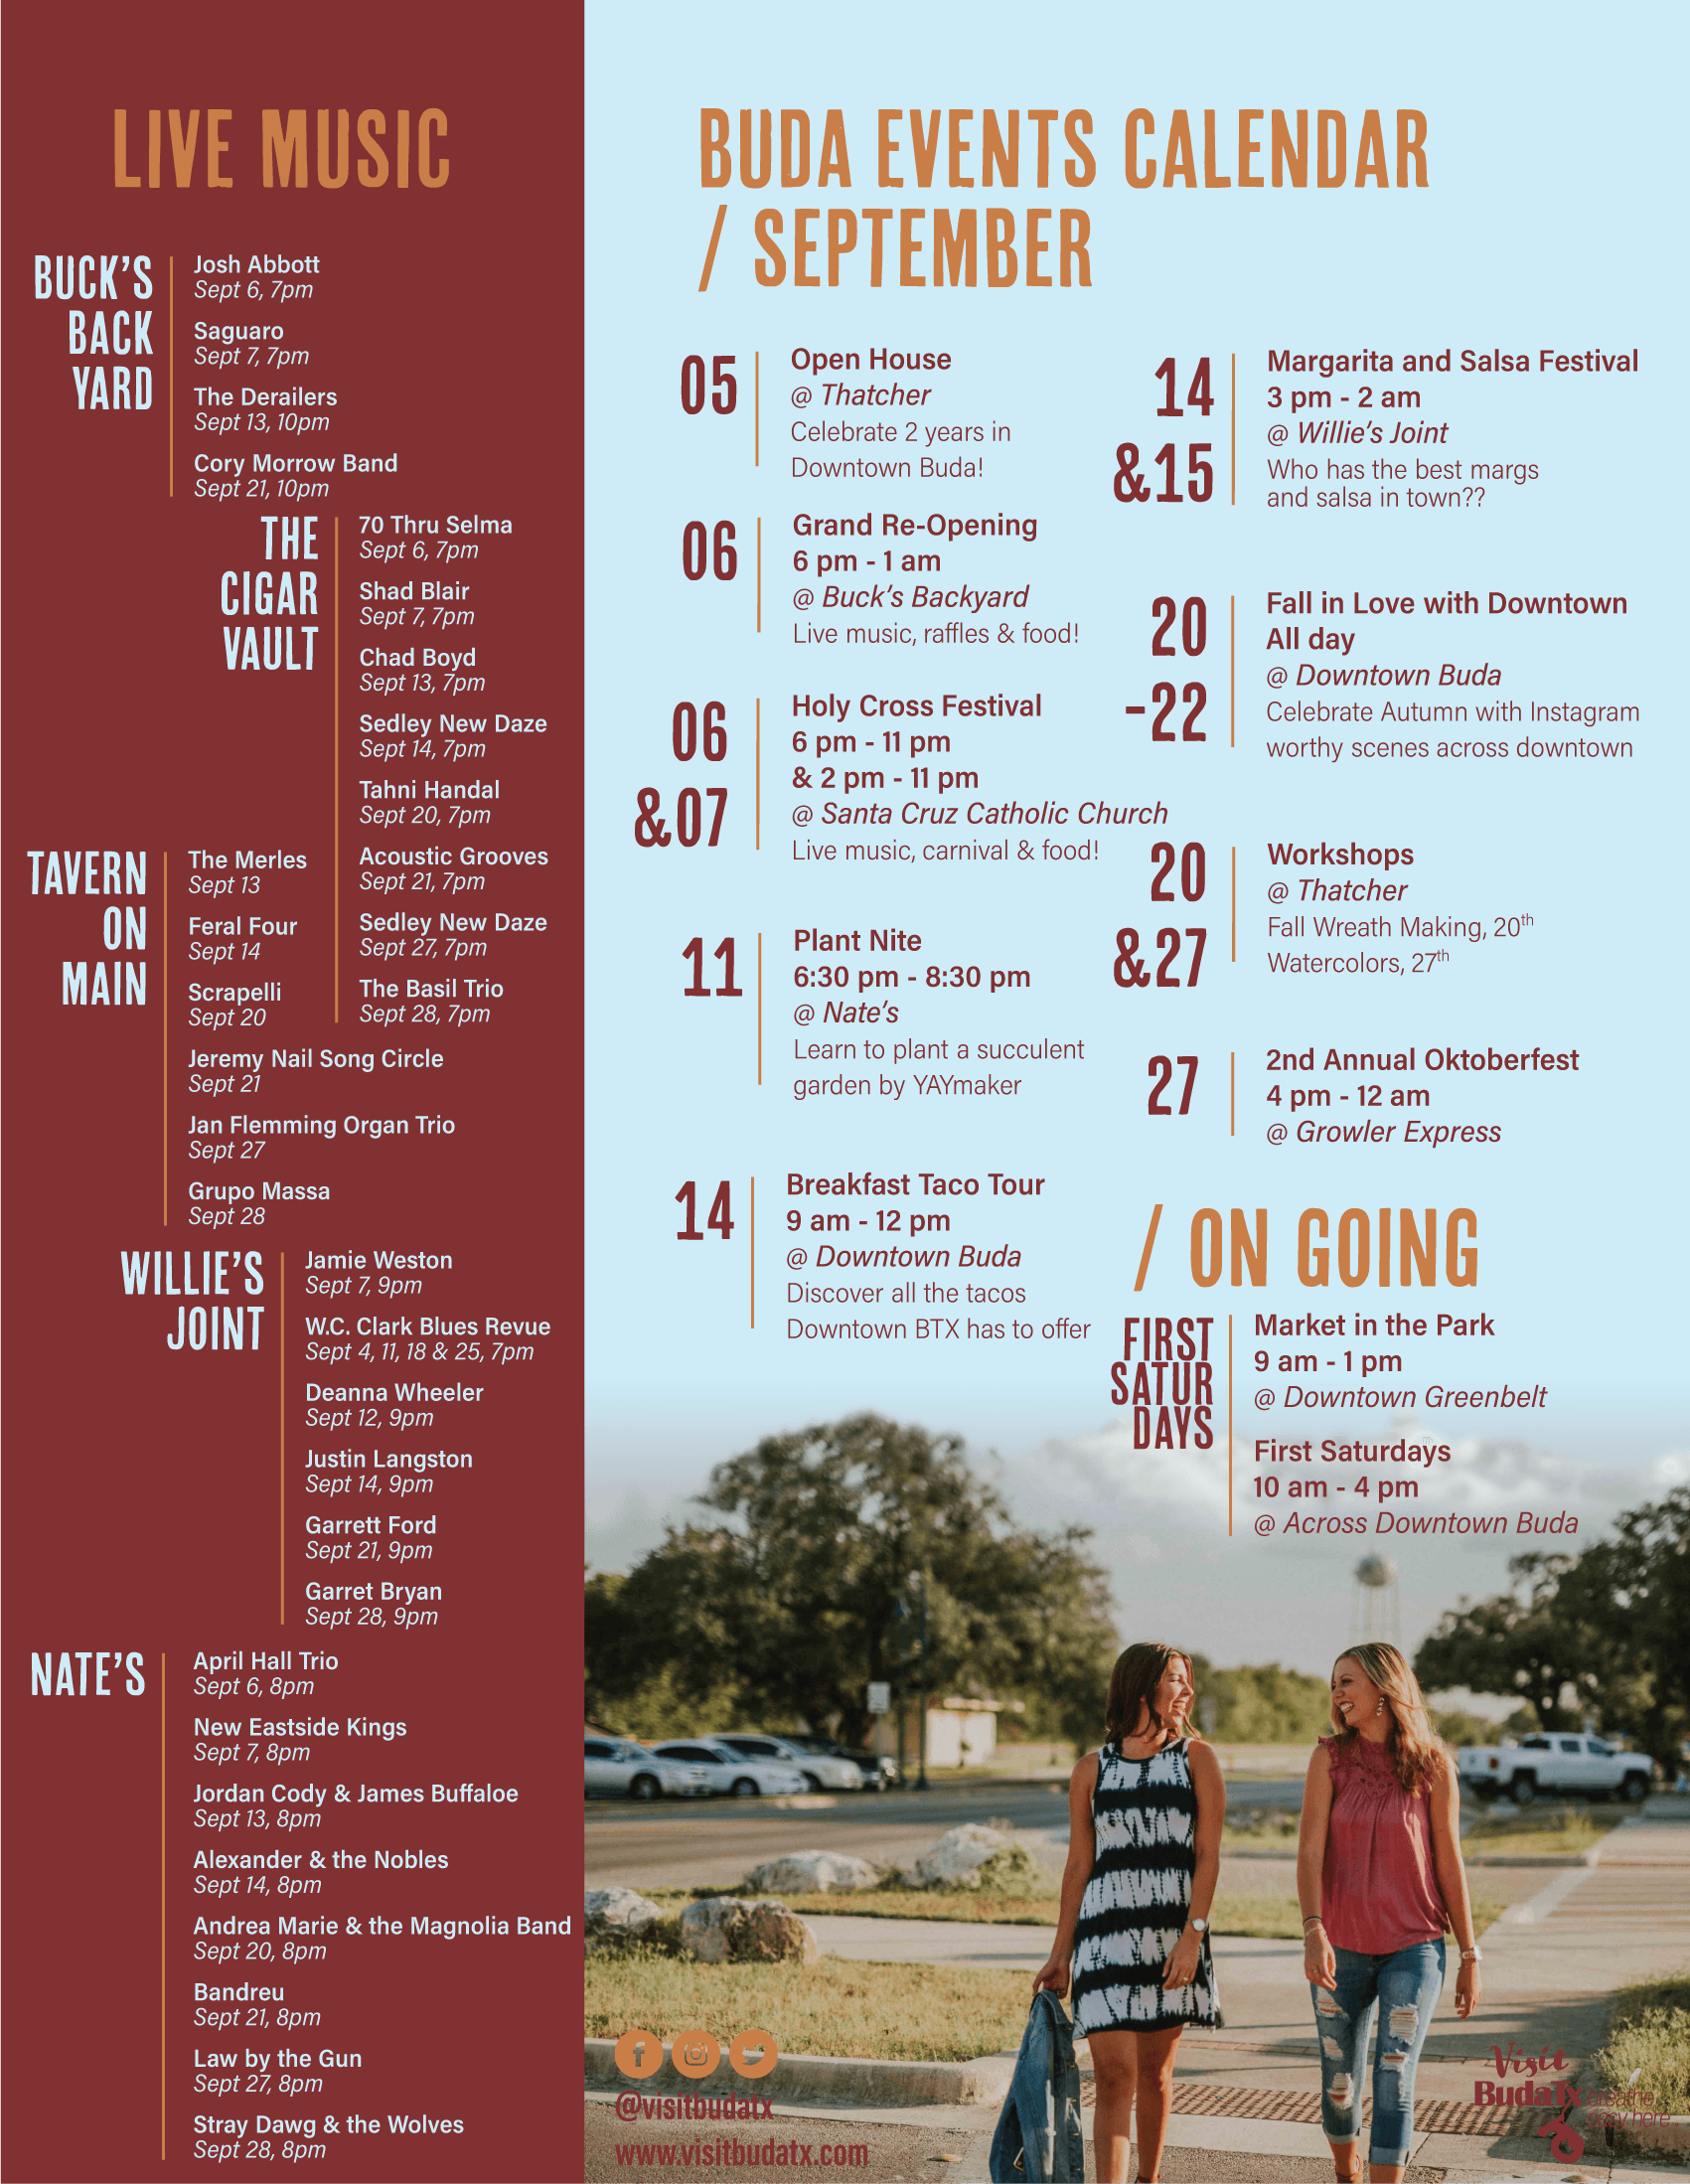 Calendar of events in Buda, TX for September 2019